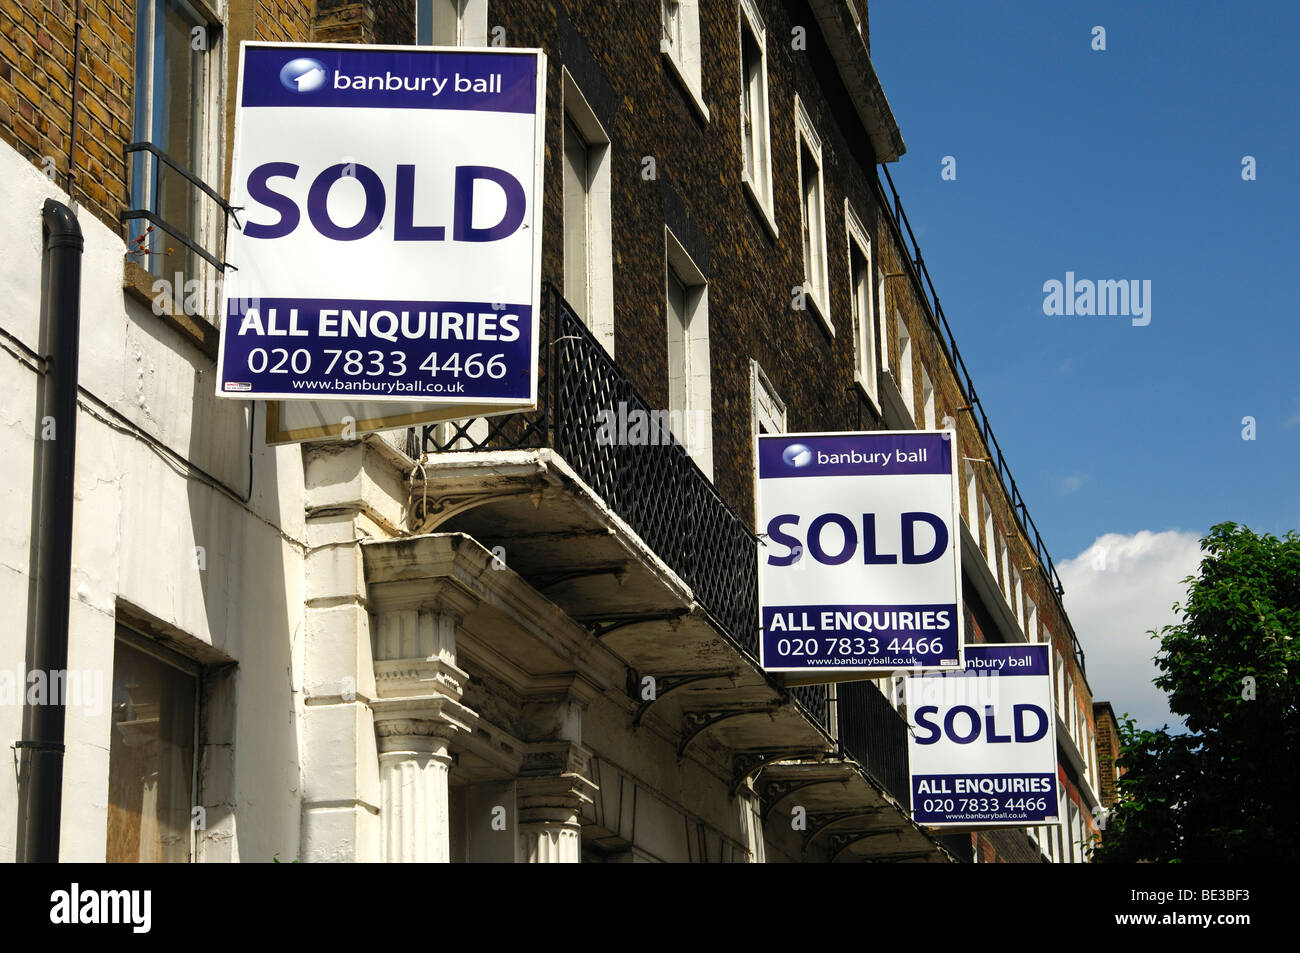 'Sold' signs of the Banbury Ball estate agents at a building, London, United Kingdom, Europe - Stock Image